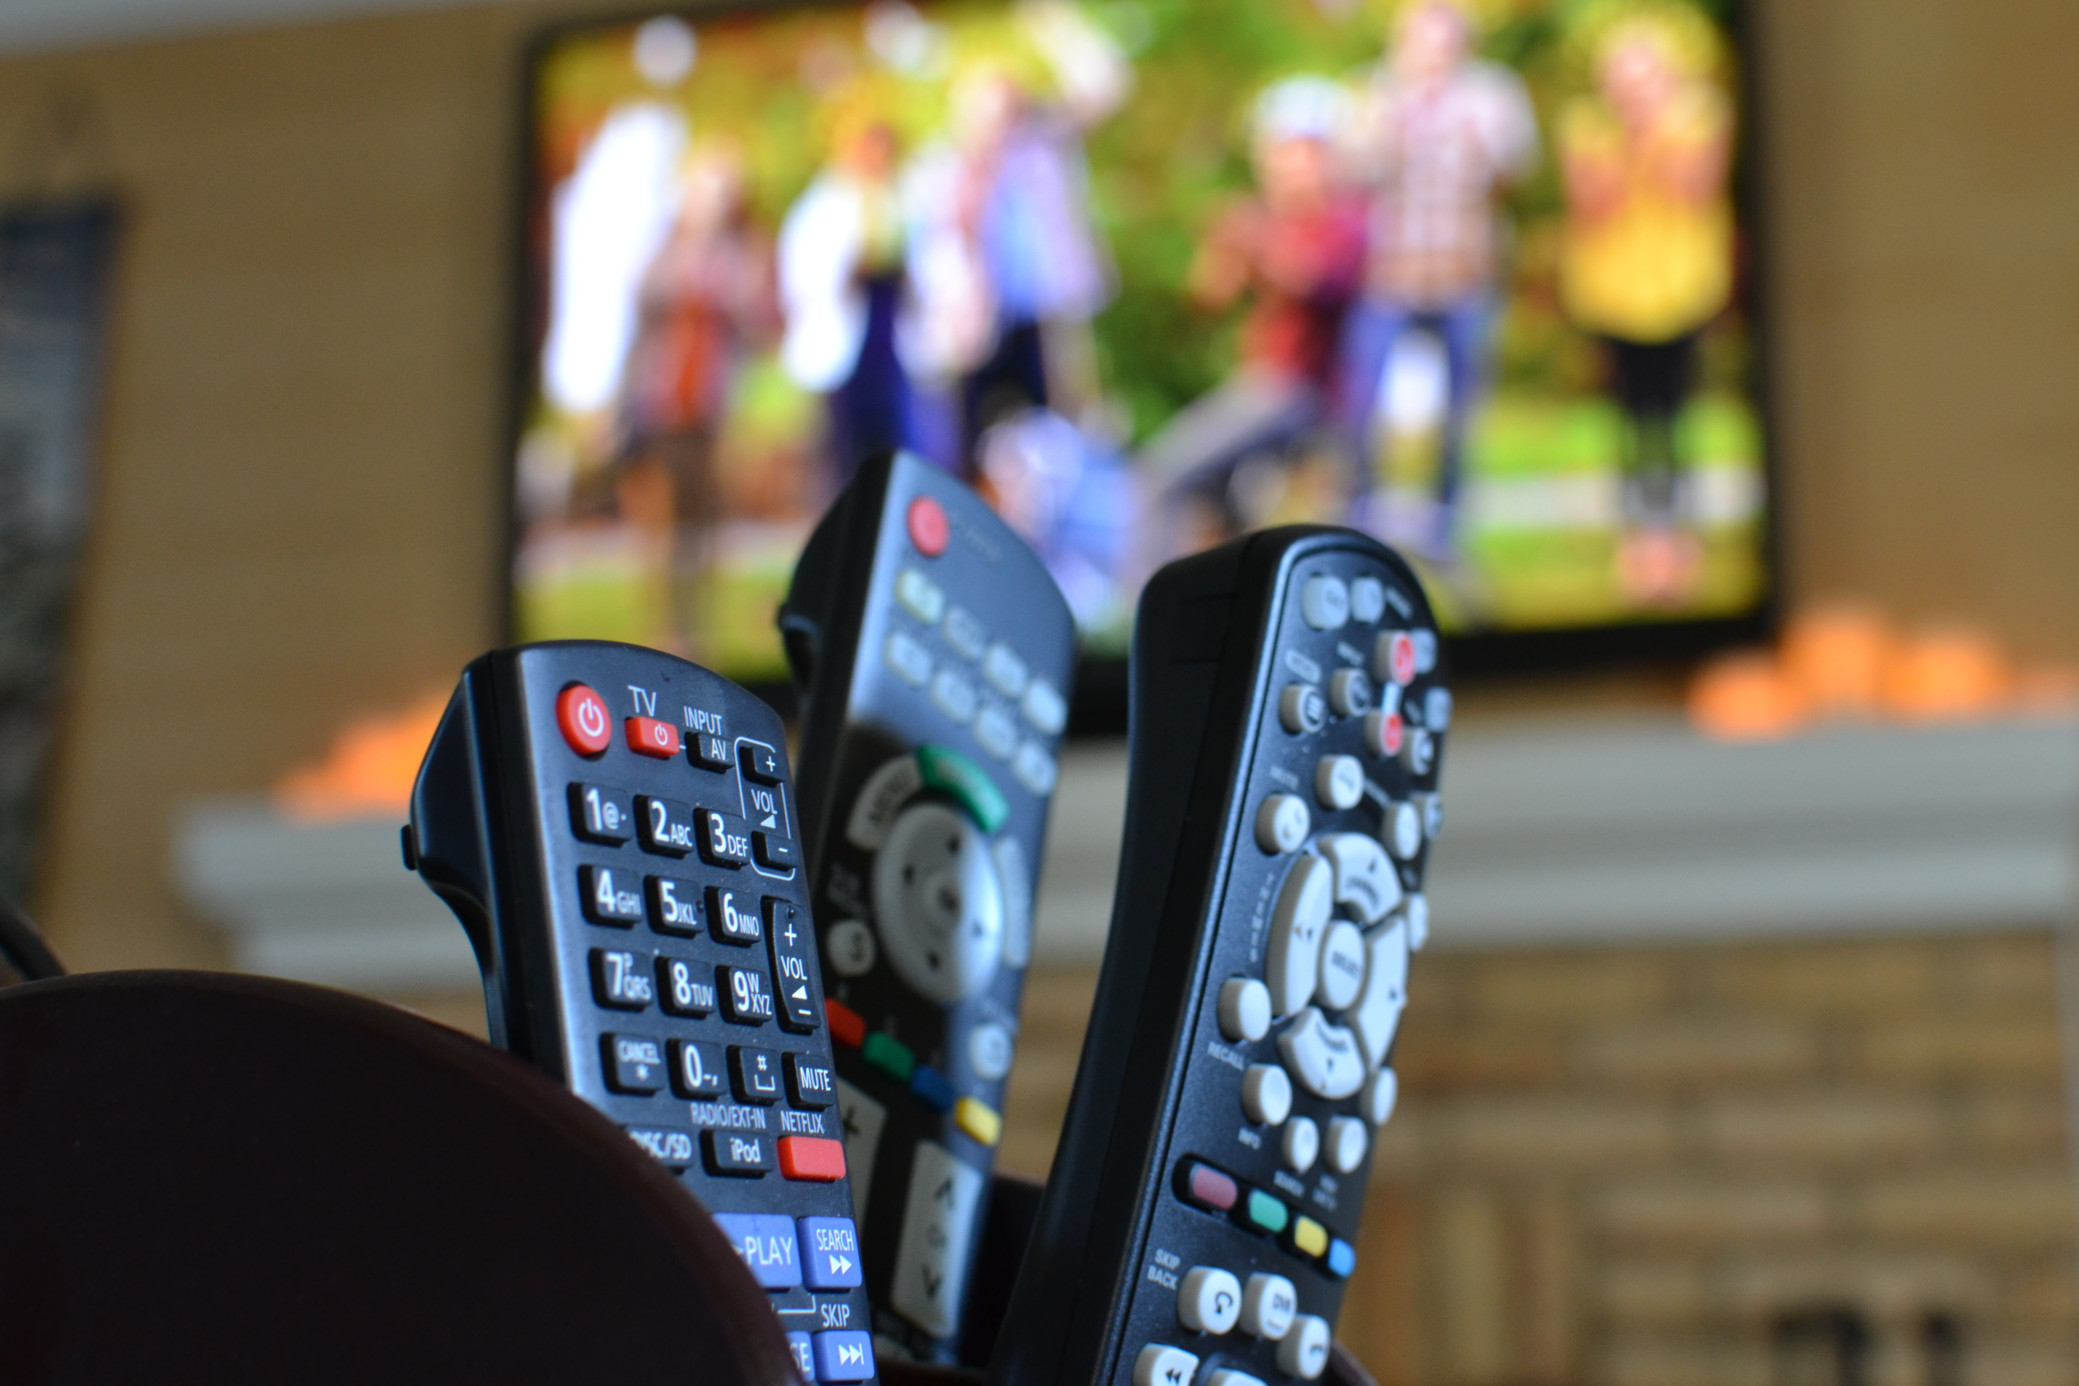 Panasonic remote only turns the tv on and off : How to fix?